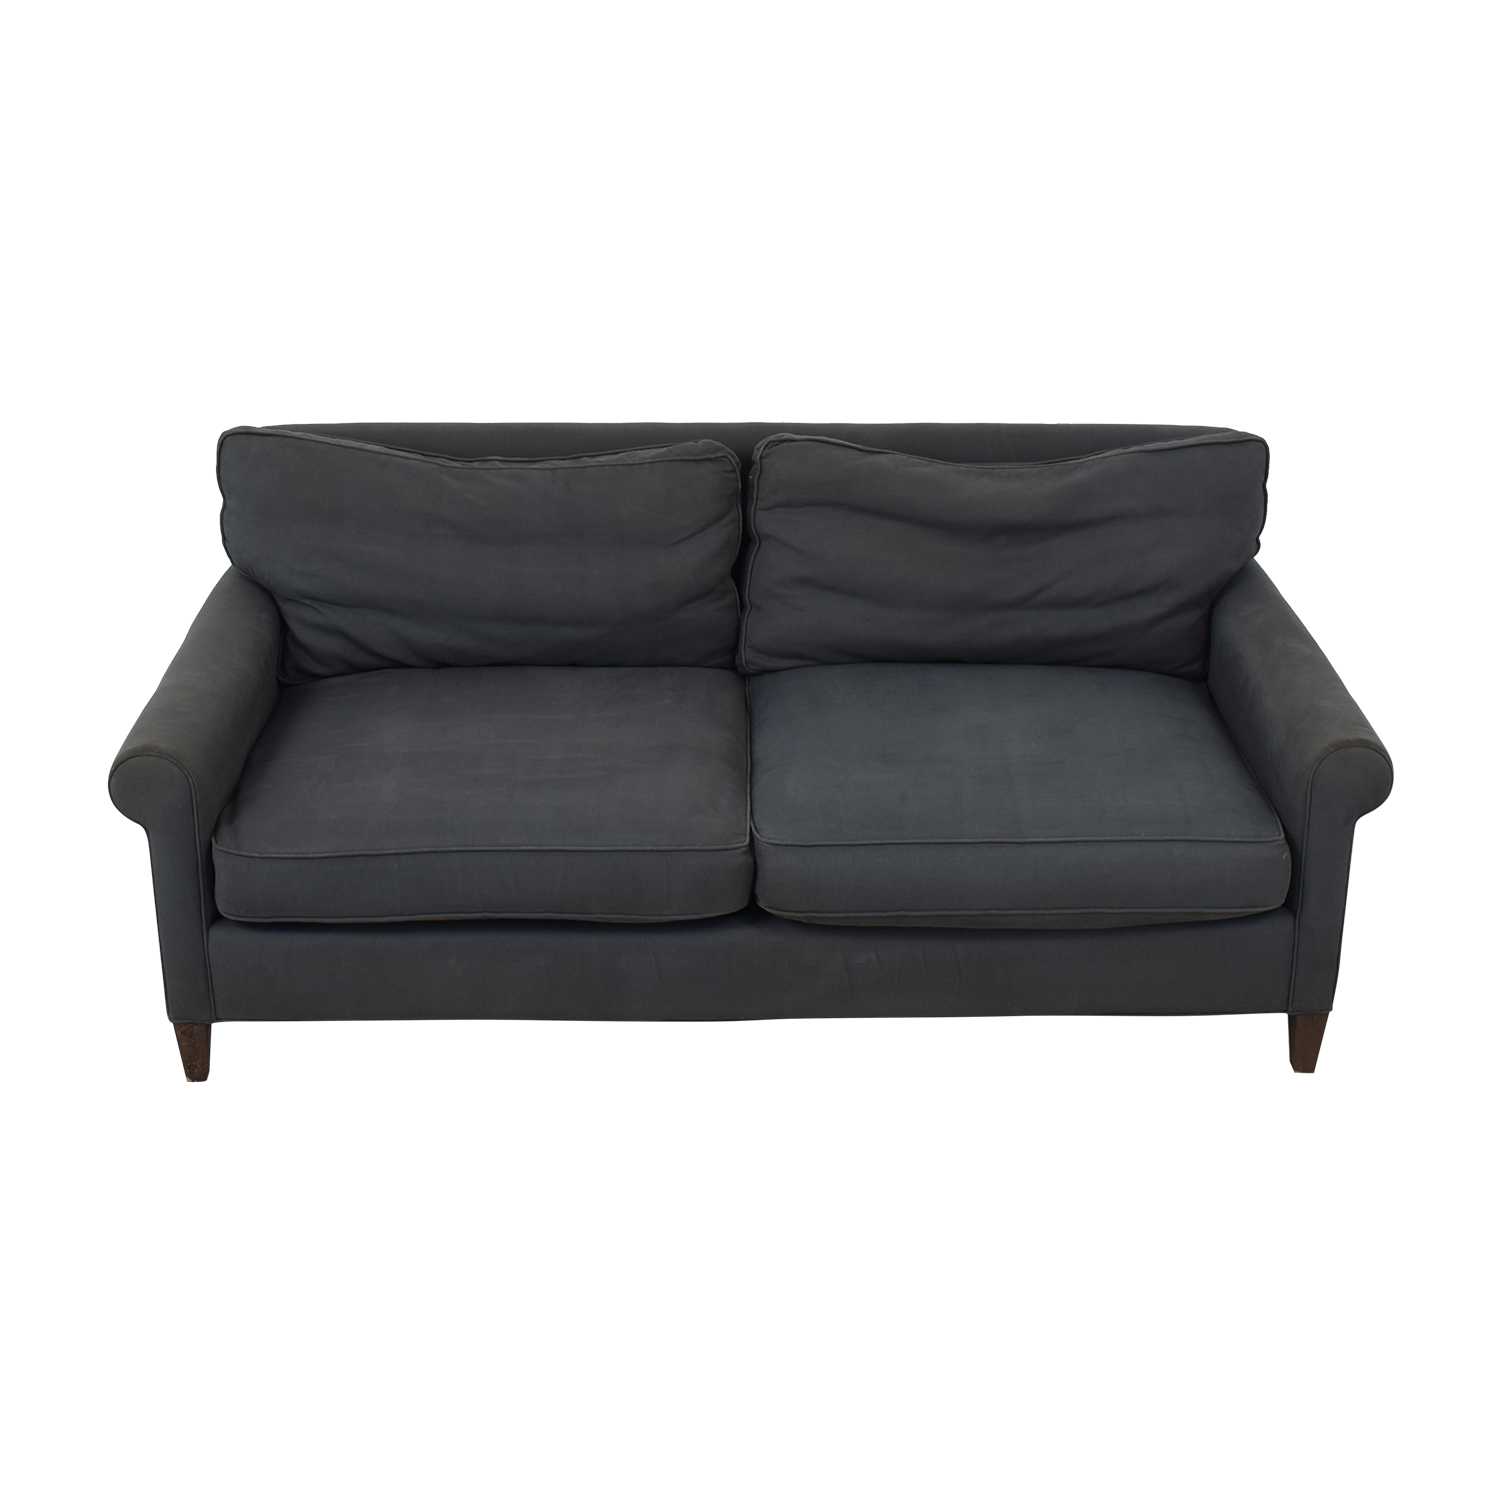 Crate & Barrel Montclair Apartment Sofa sale